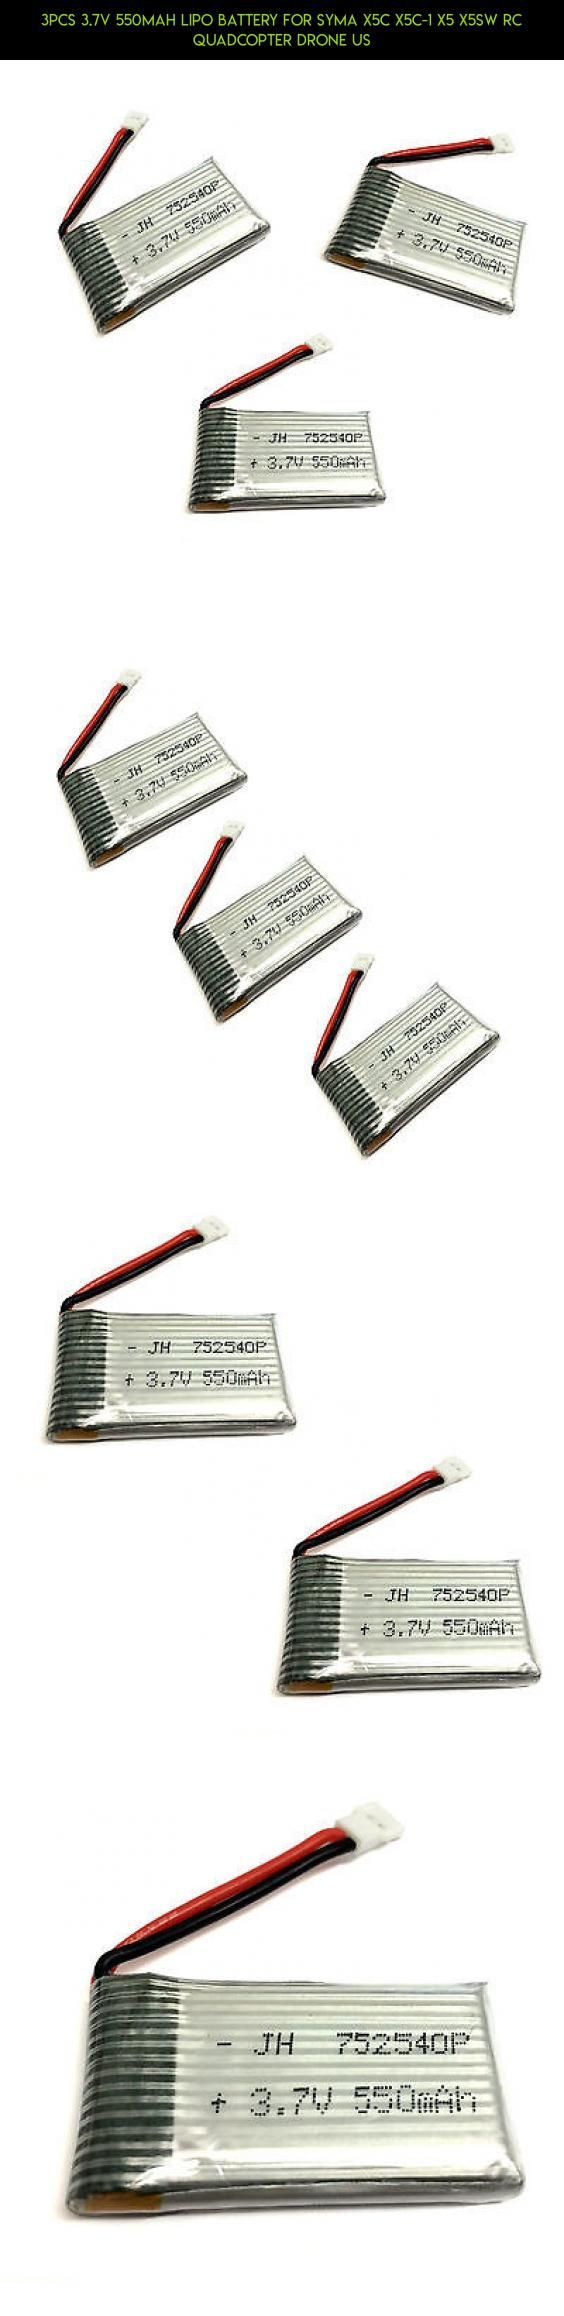 3pcs 3.7V 550mAh Lipo Battery For Syma X5C X5C-1 X5 X5SW RC Quadcopter Drone US #technology #products #racing #camera #drone #kit #gadgets #drone #fpv #tech #parts #battery #plans #shopping #syma